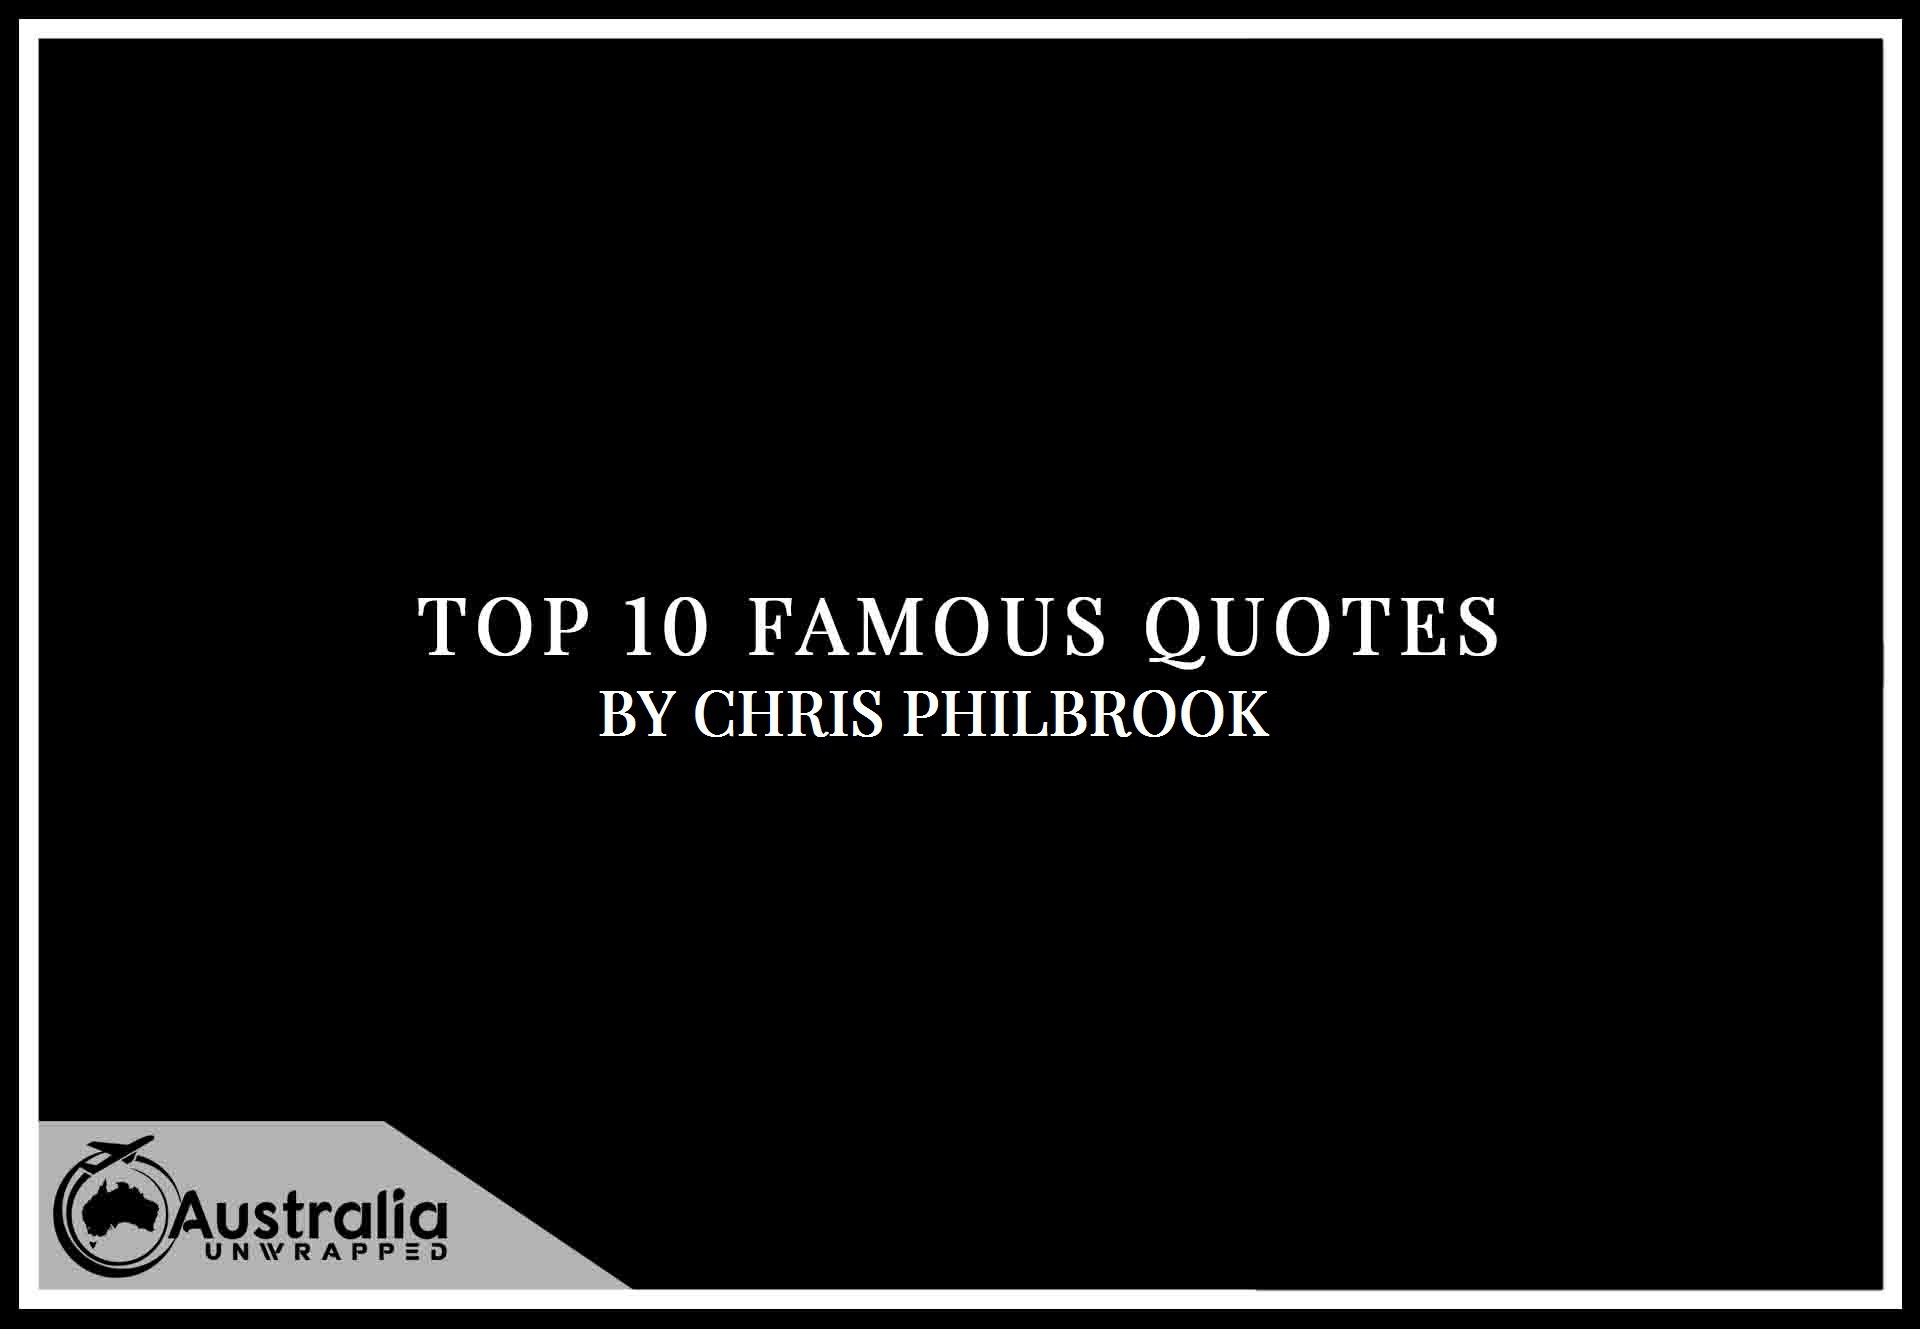 Chris Philbrook's Top 10 Popular and Famous Quotes